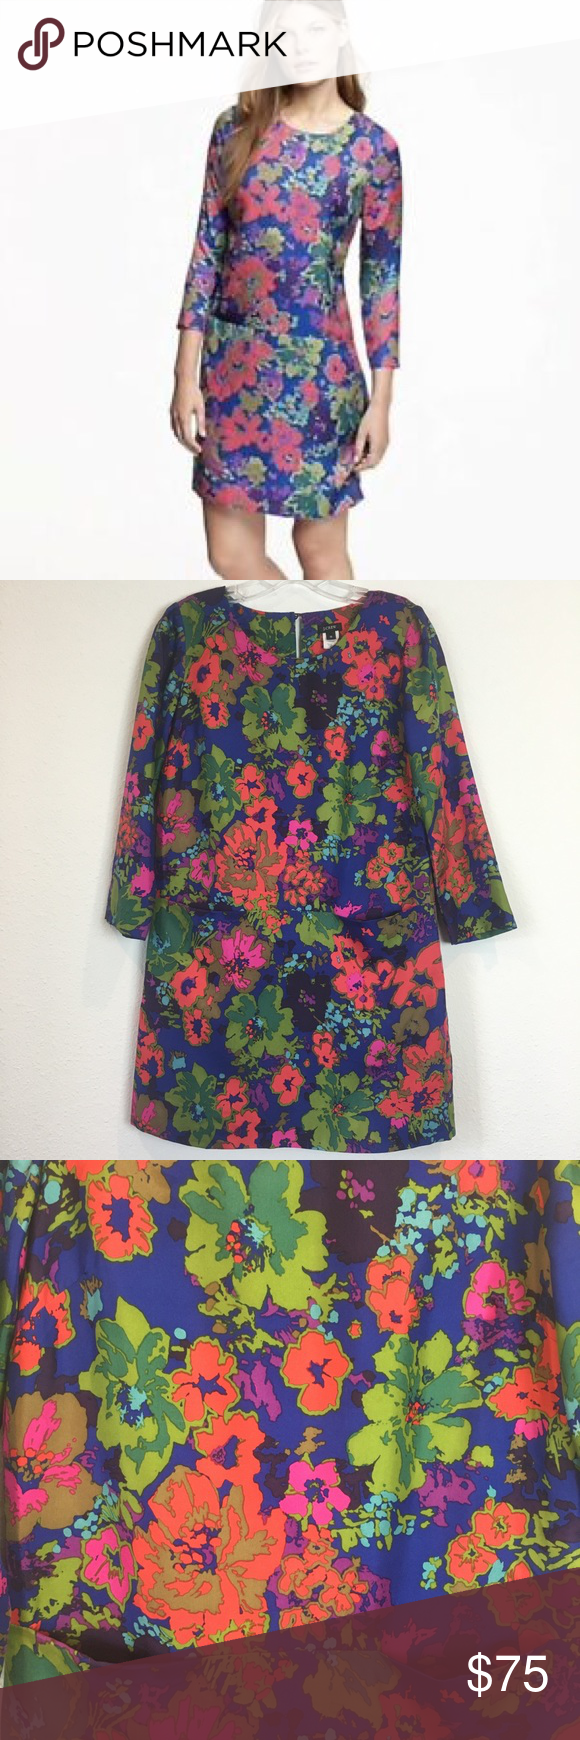 ZARA Floral Printed Tunic Buttoned Shirt Dress With Belt Off White 4043//070 S